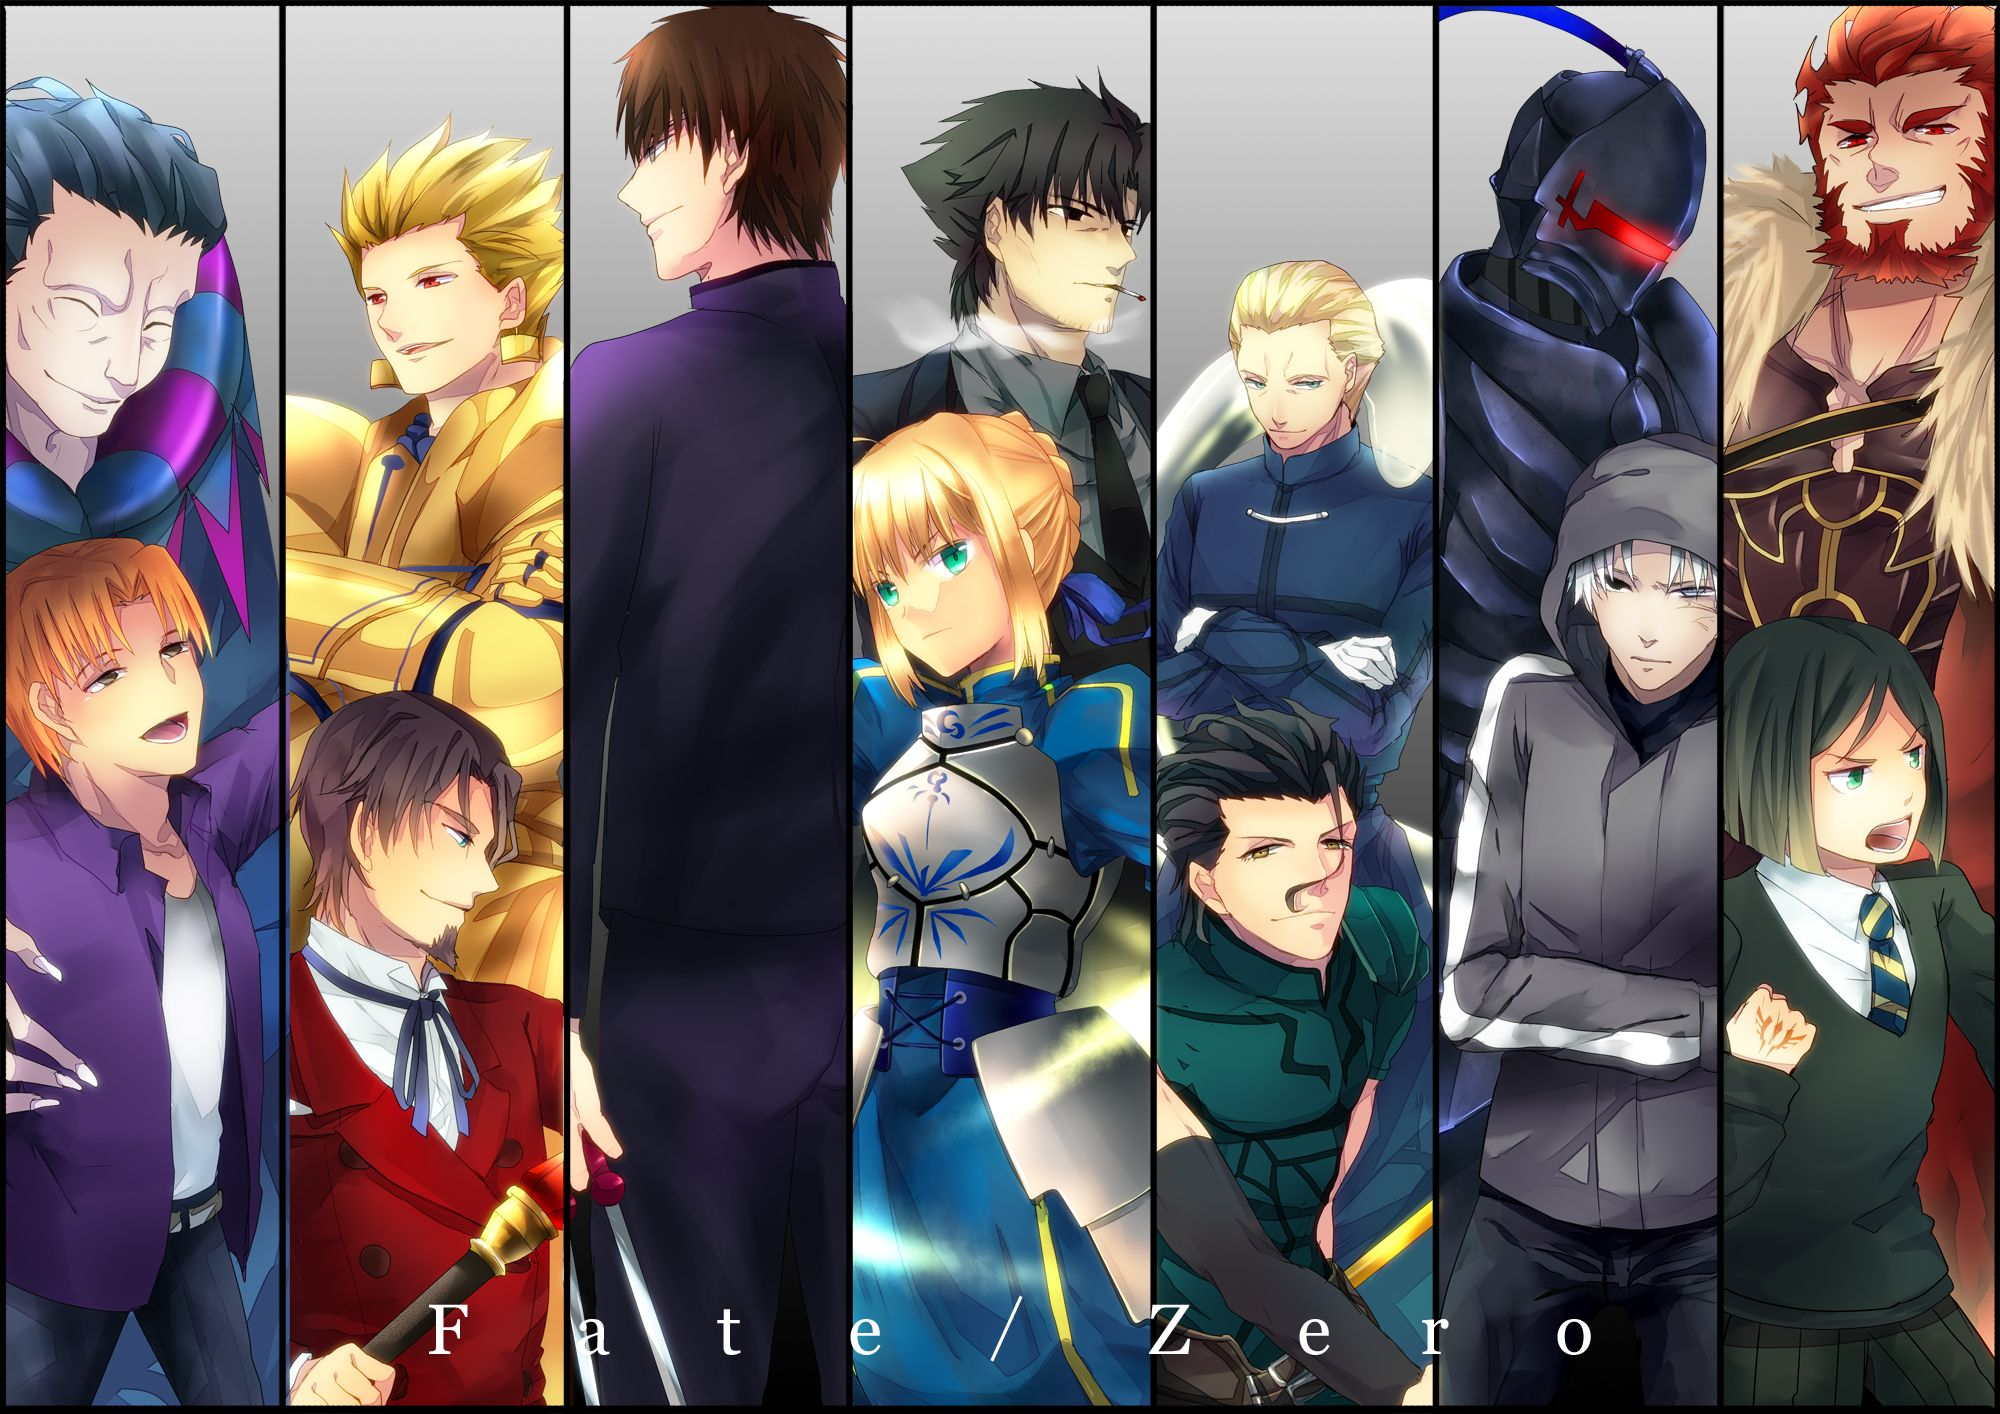 Pin by ghosttypemaster on Saber RULES!!! Fate stay night